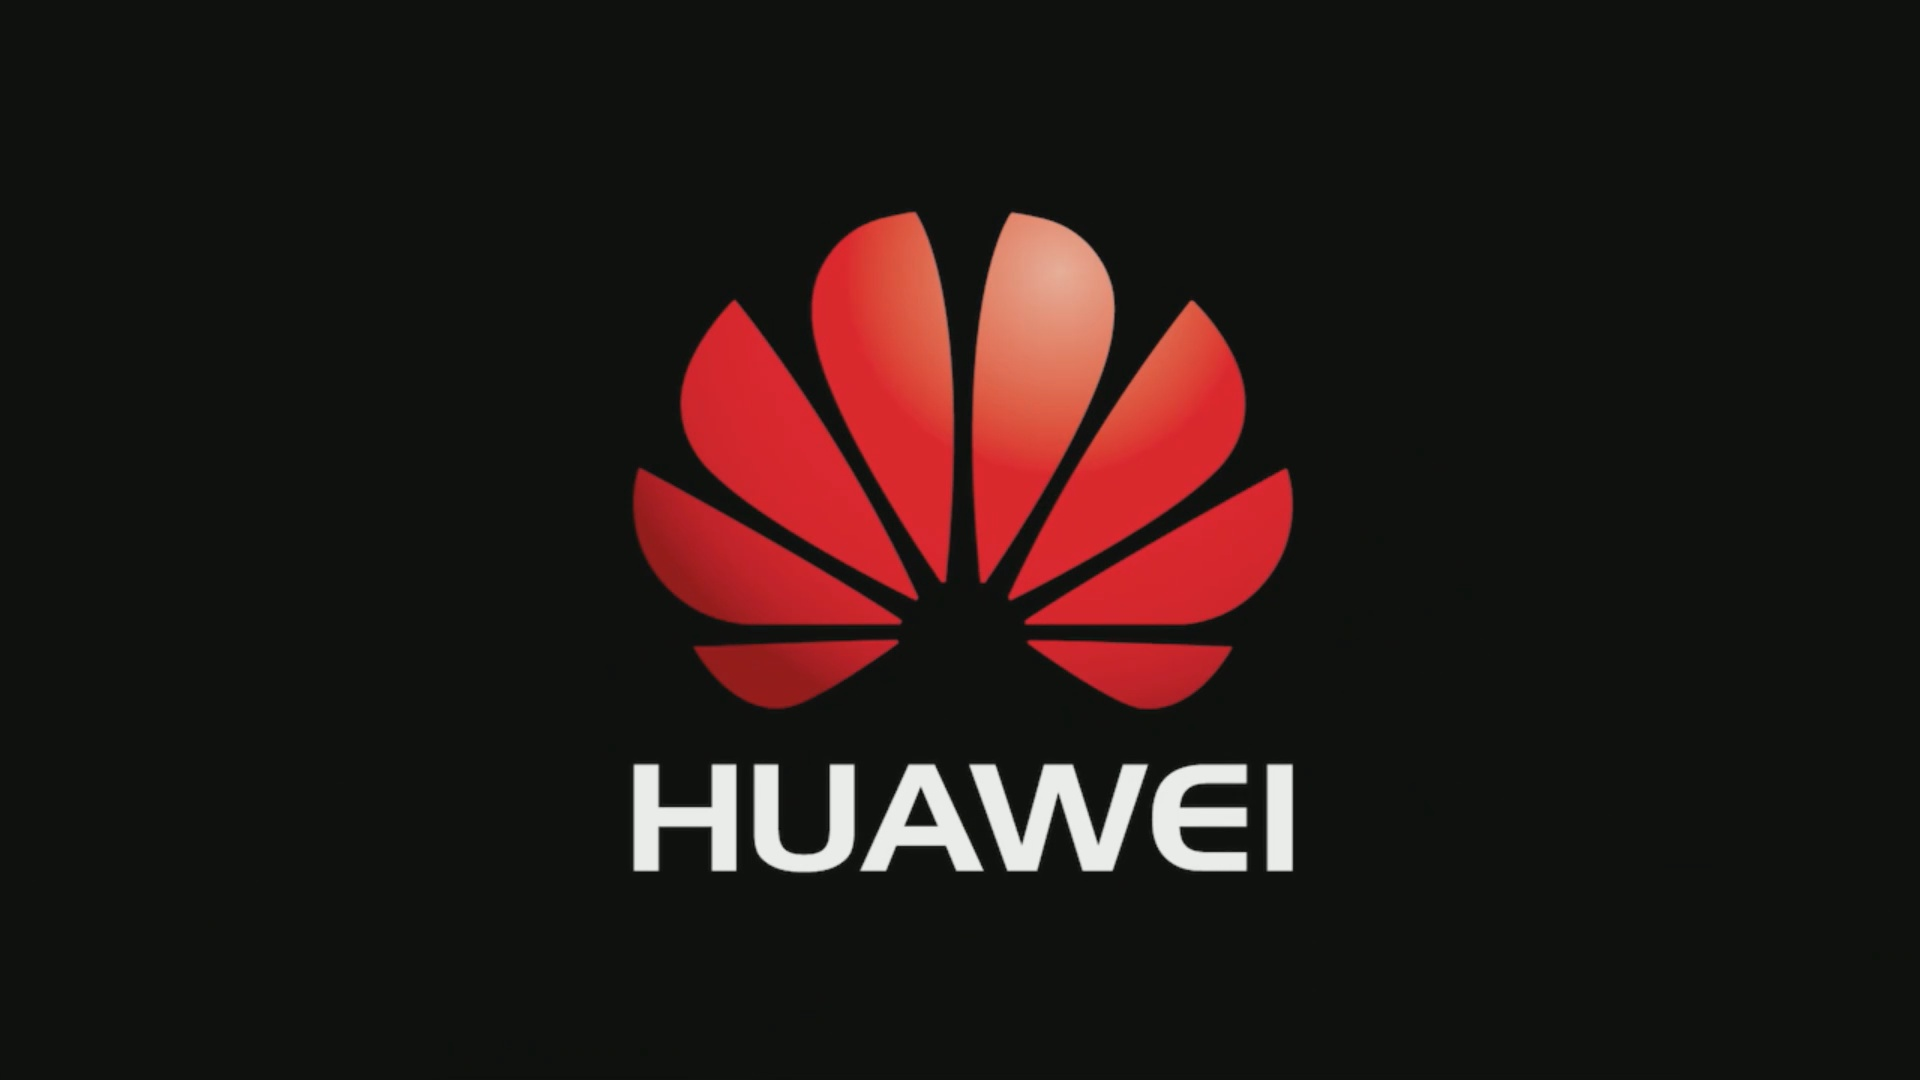 Fixed - Sound Not Works on Huawei T8300